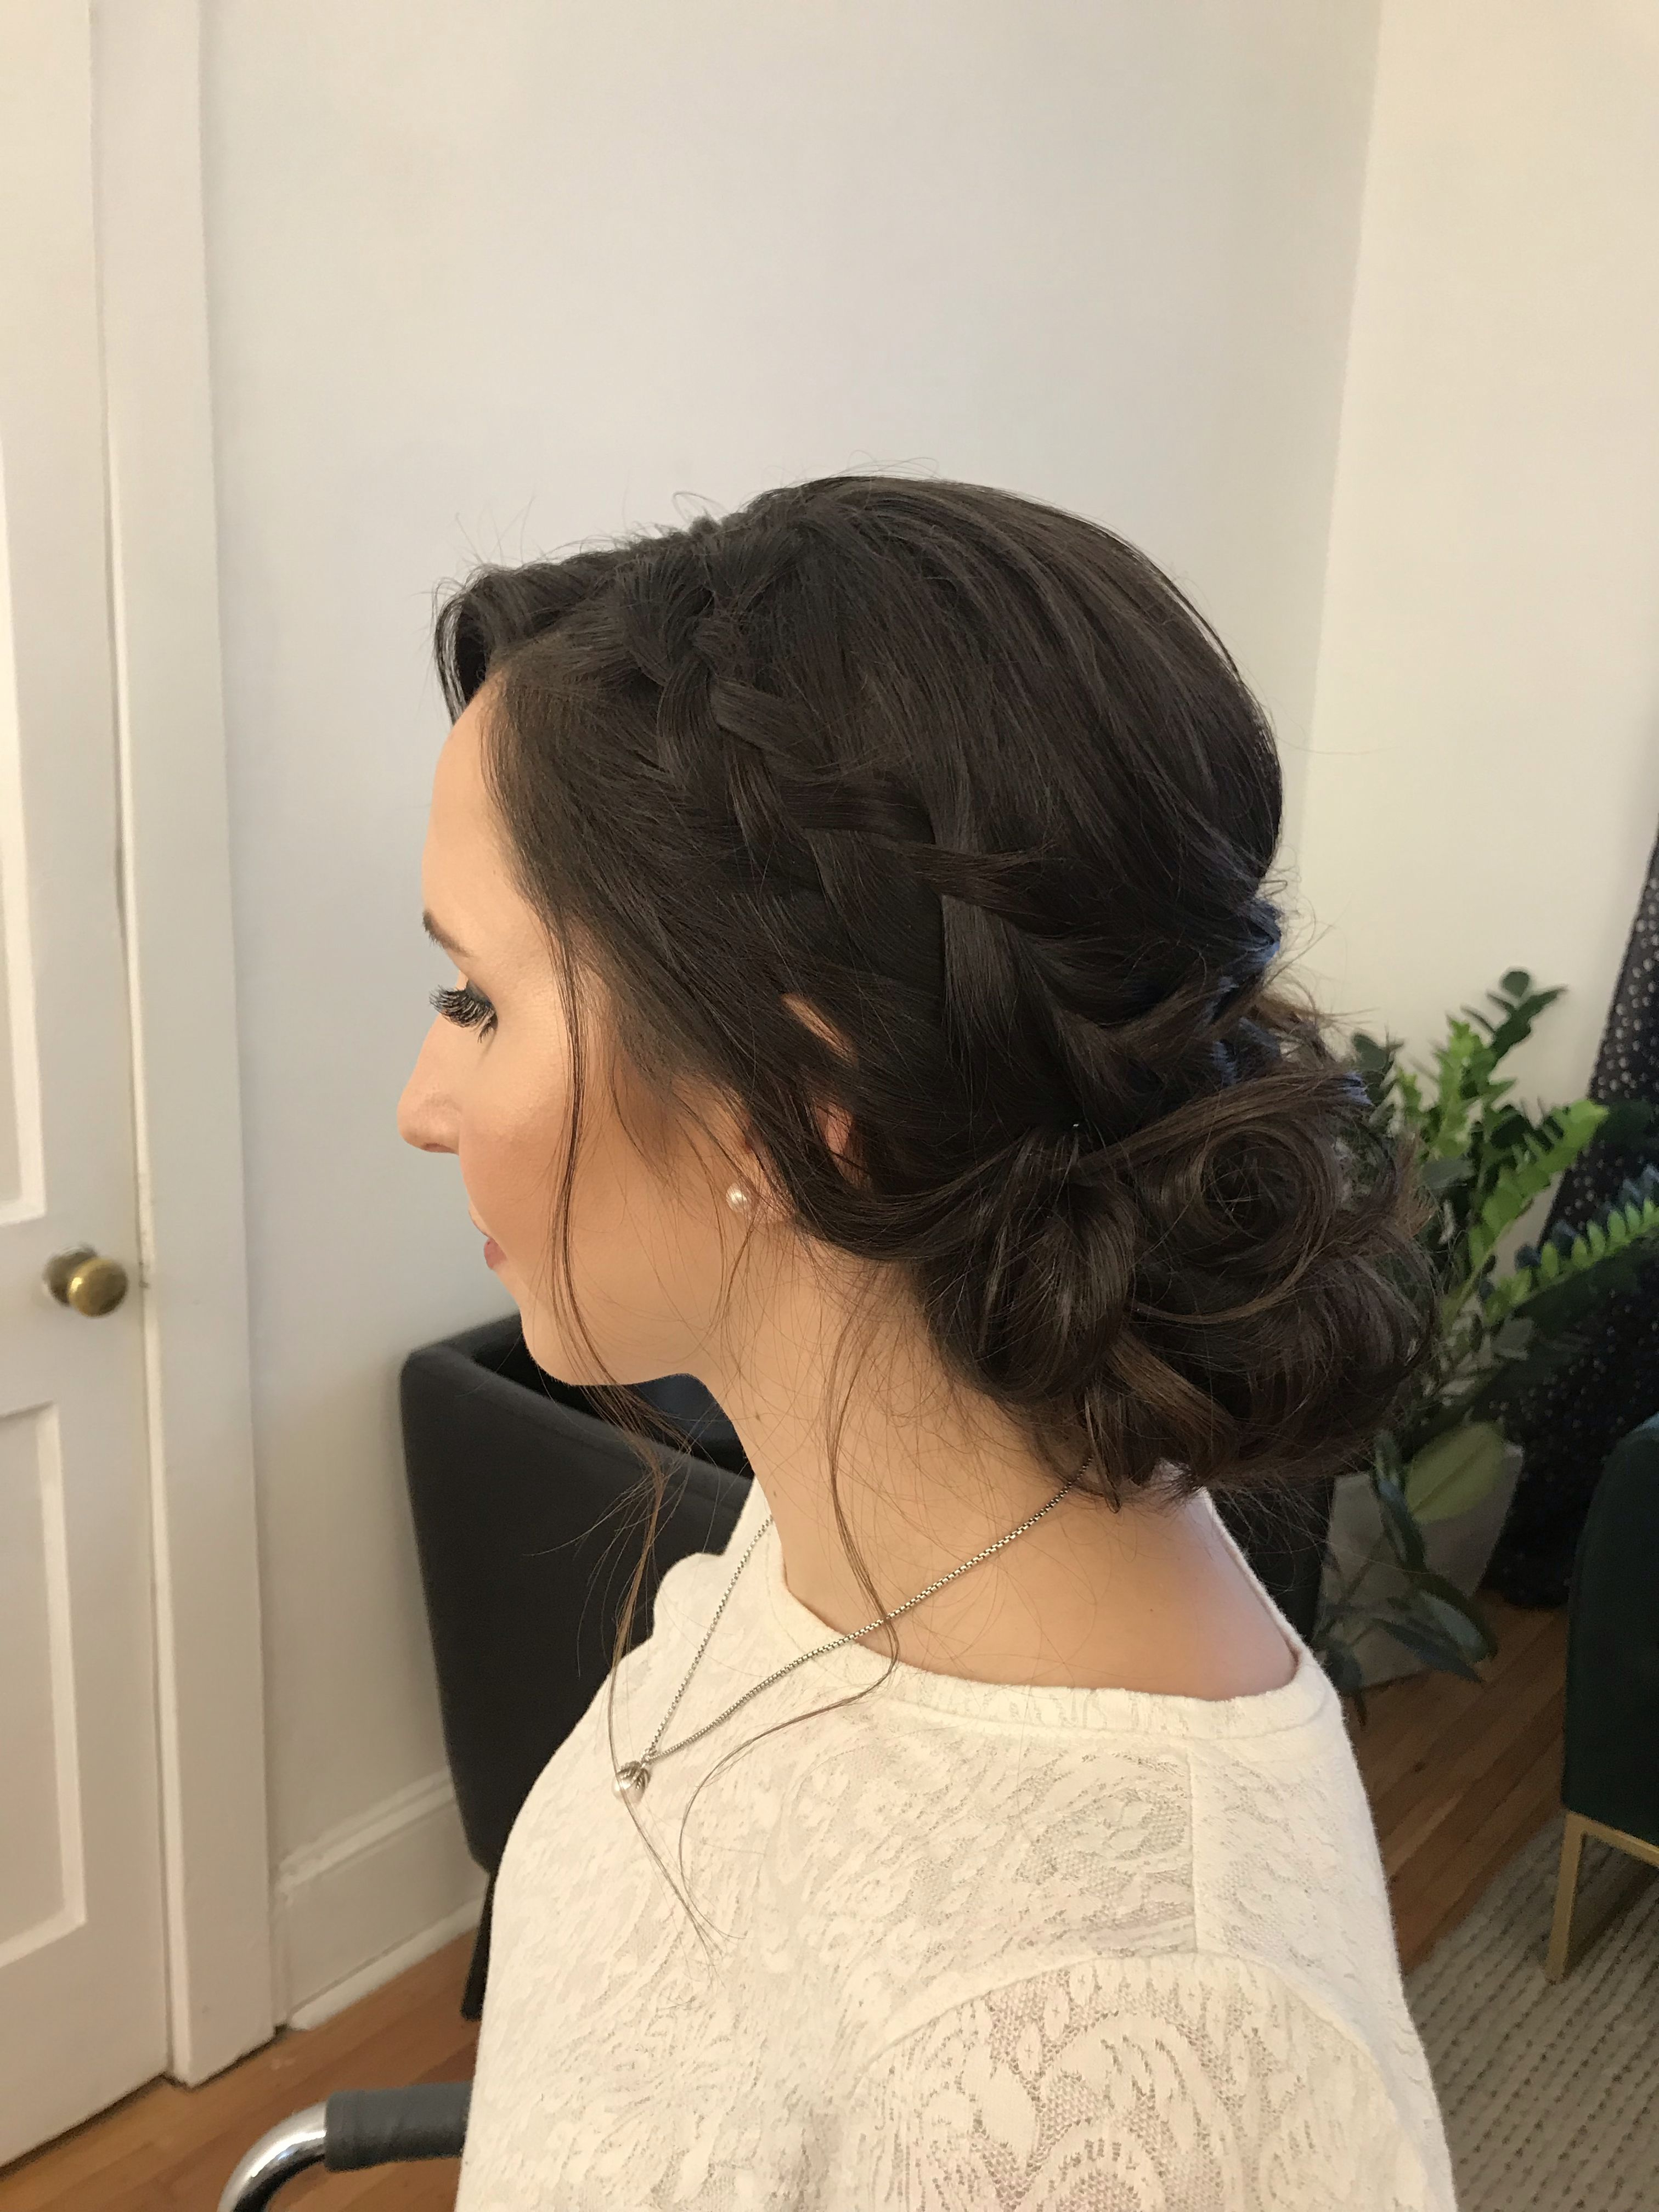 Best And Newest Brown Woven Updo Braid Hairstyles For Brown Hair Braided Updo, Formal Updo With Braid, Modern Updo (View 6 of 20)